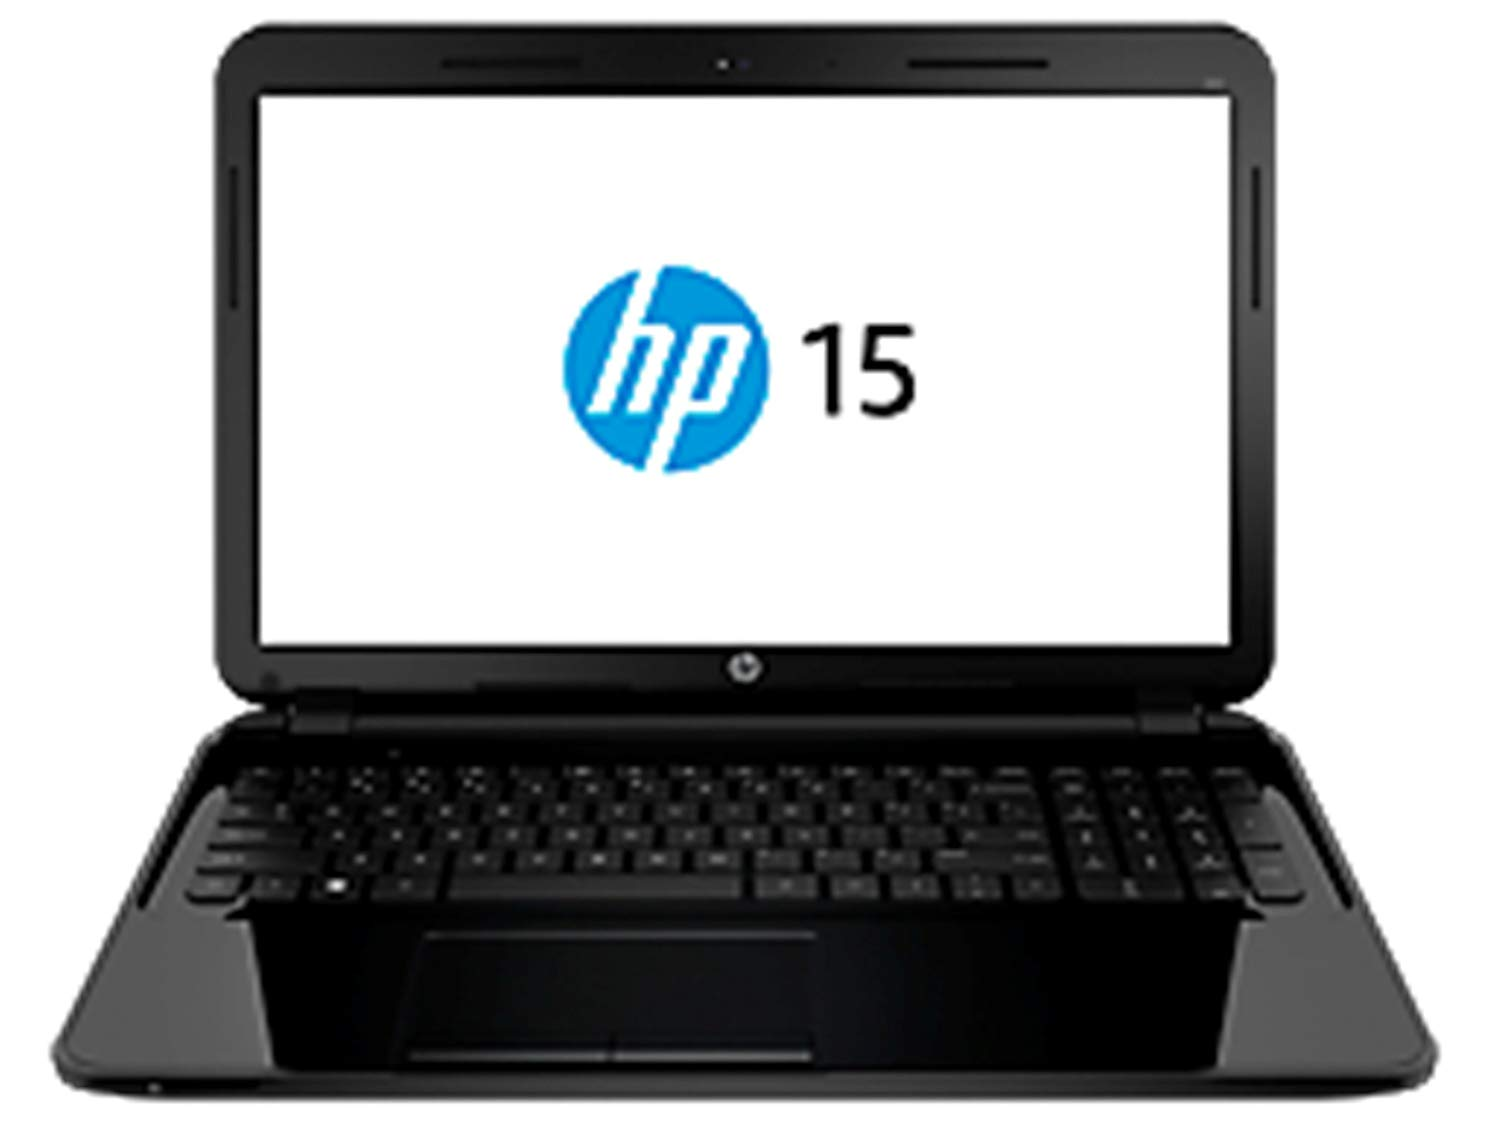 HP 15-r006TU 15.6-inch Laptop Image